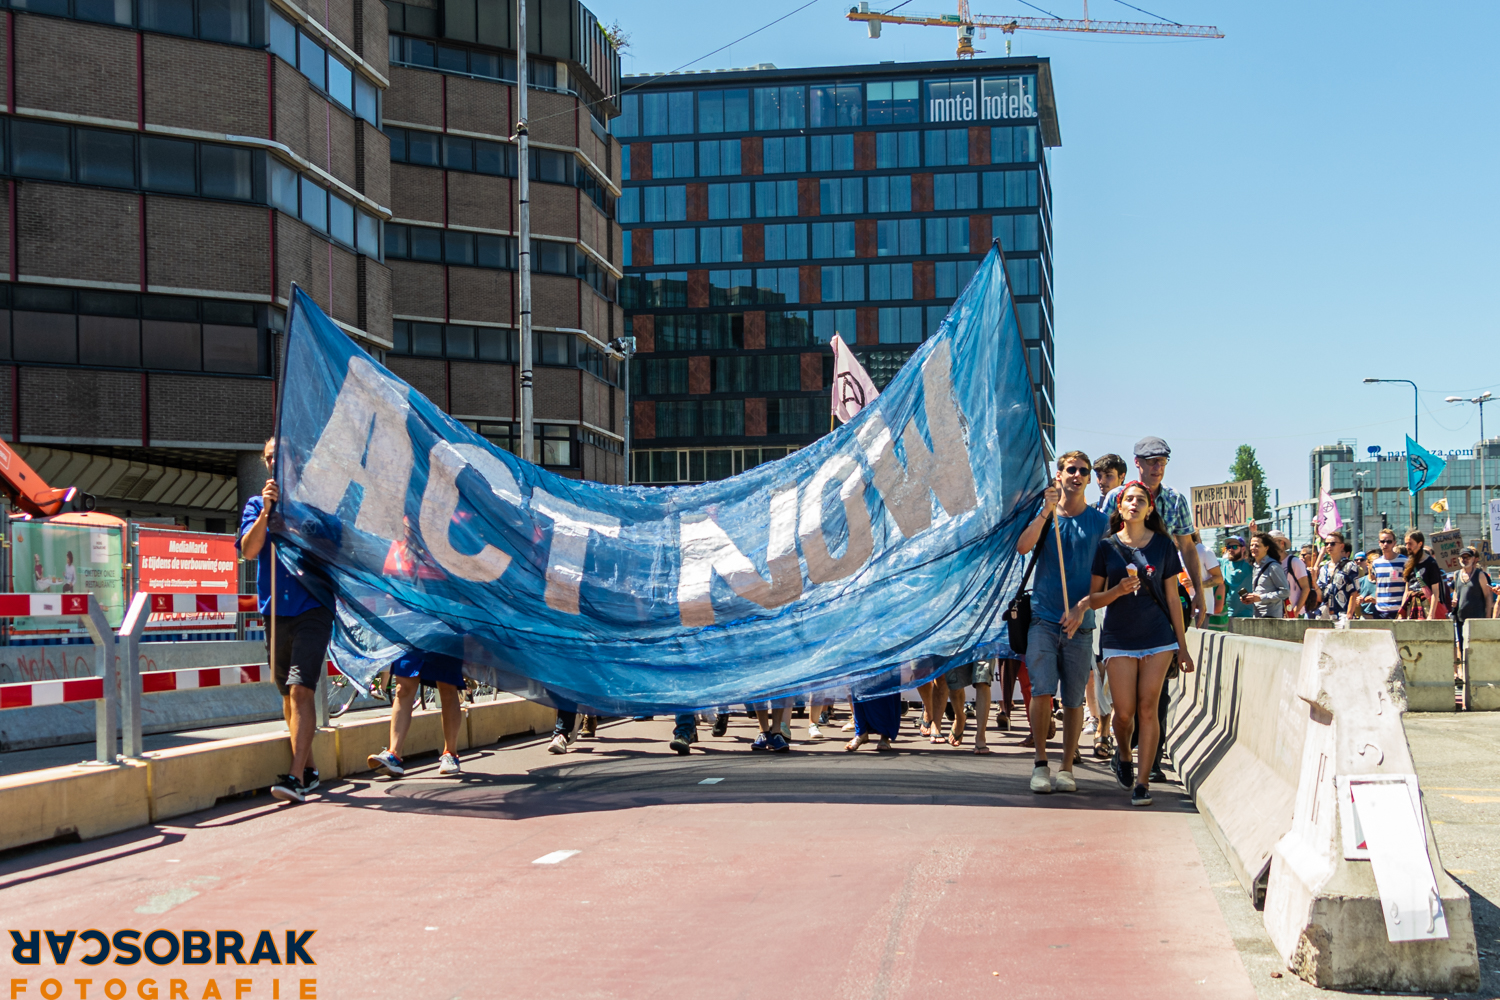 extinction rebellion utrecht stroomt over oscar brak fotografie